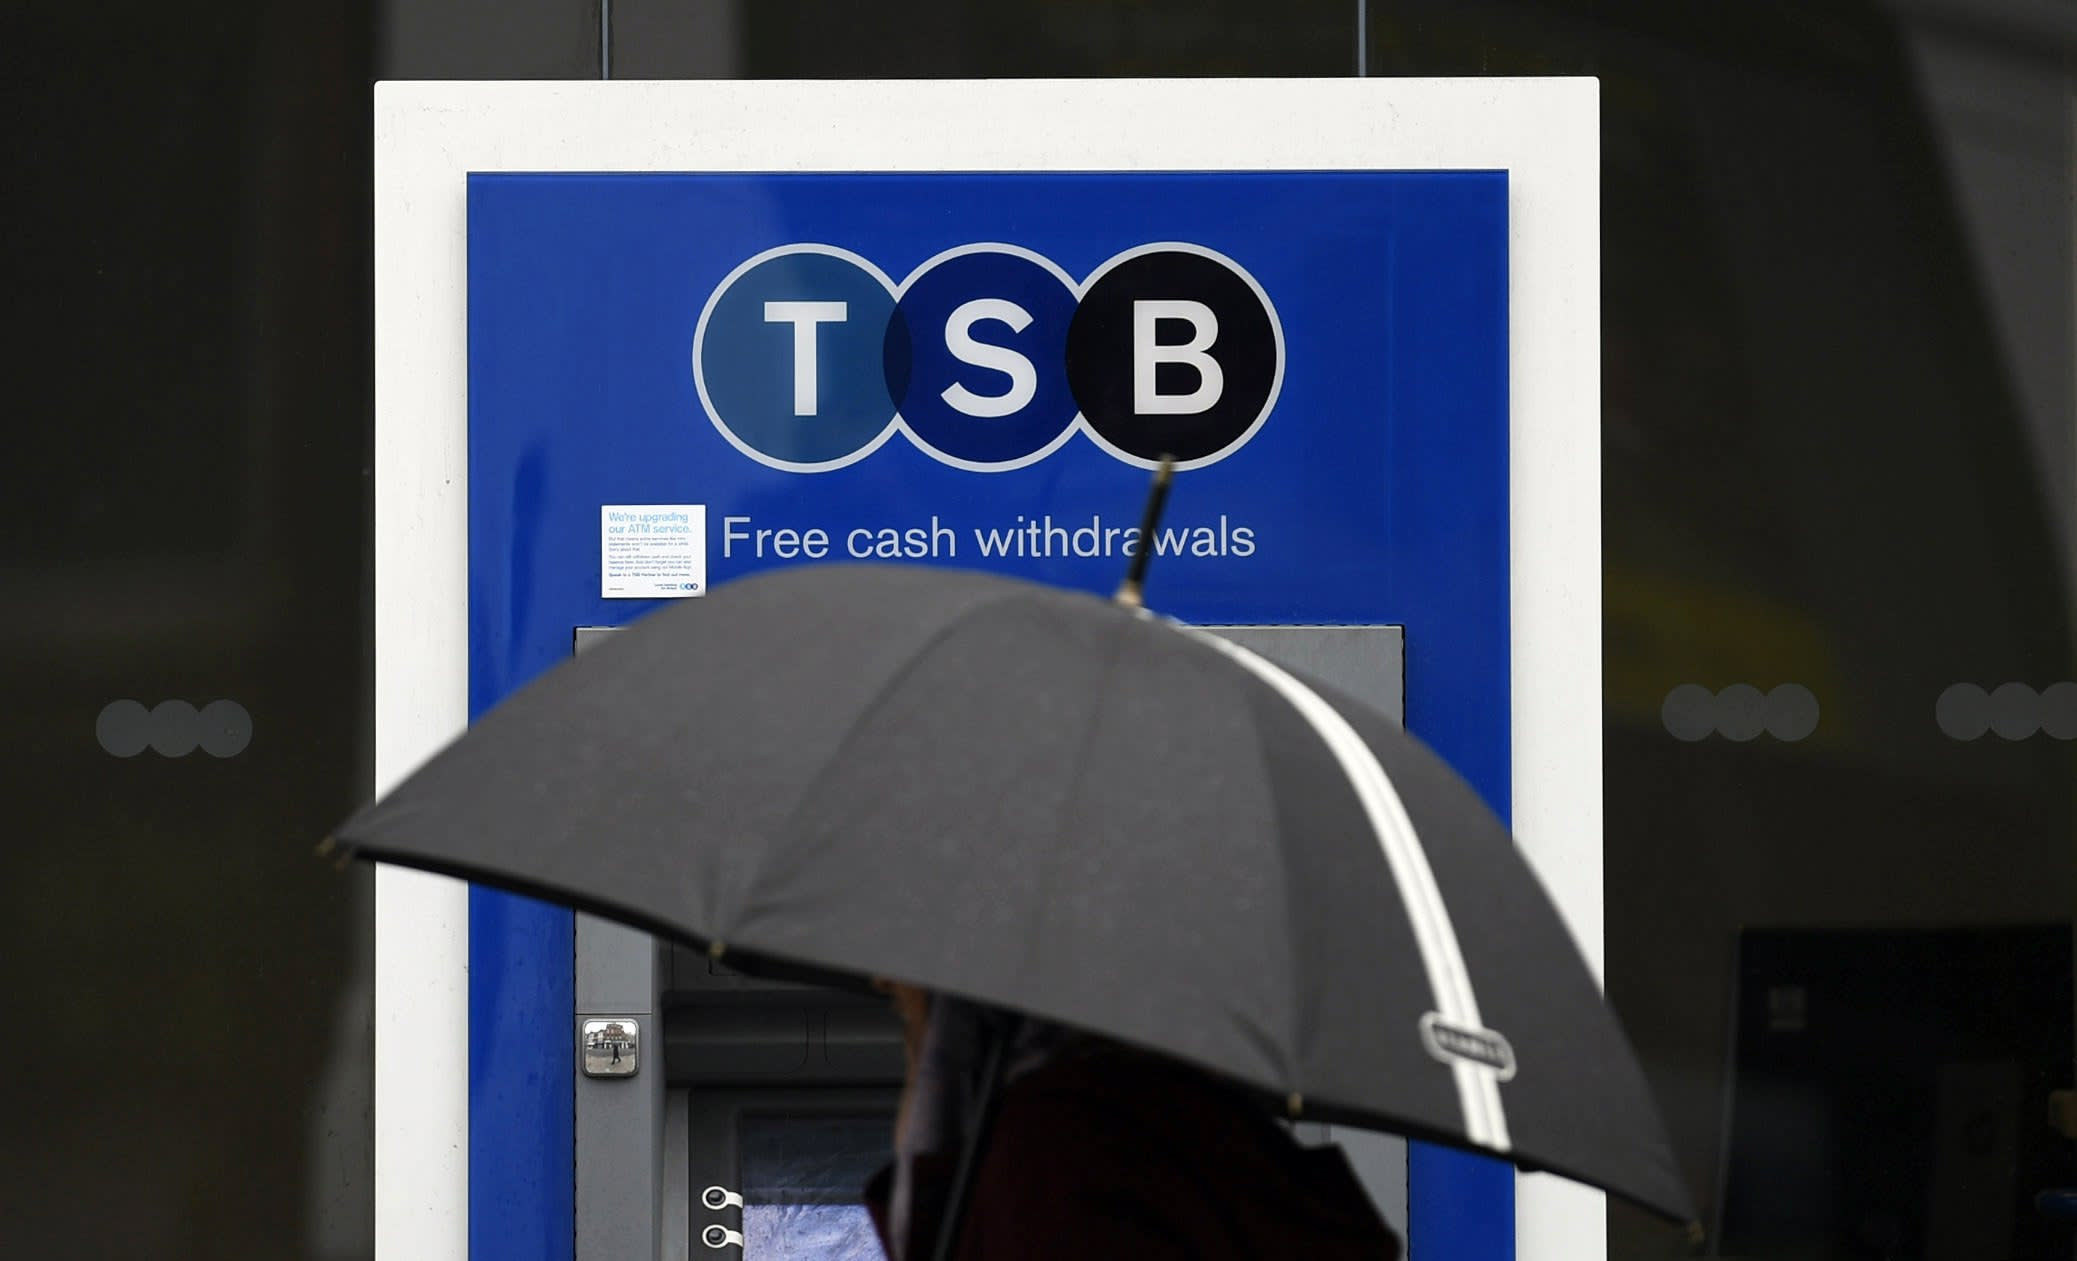 TSB partners with robo-adviser Wealthify